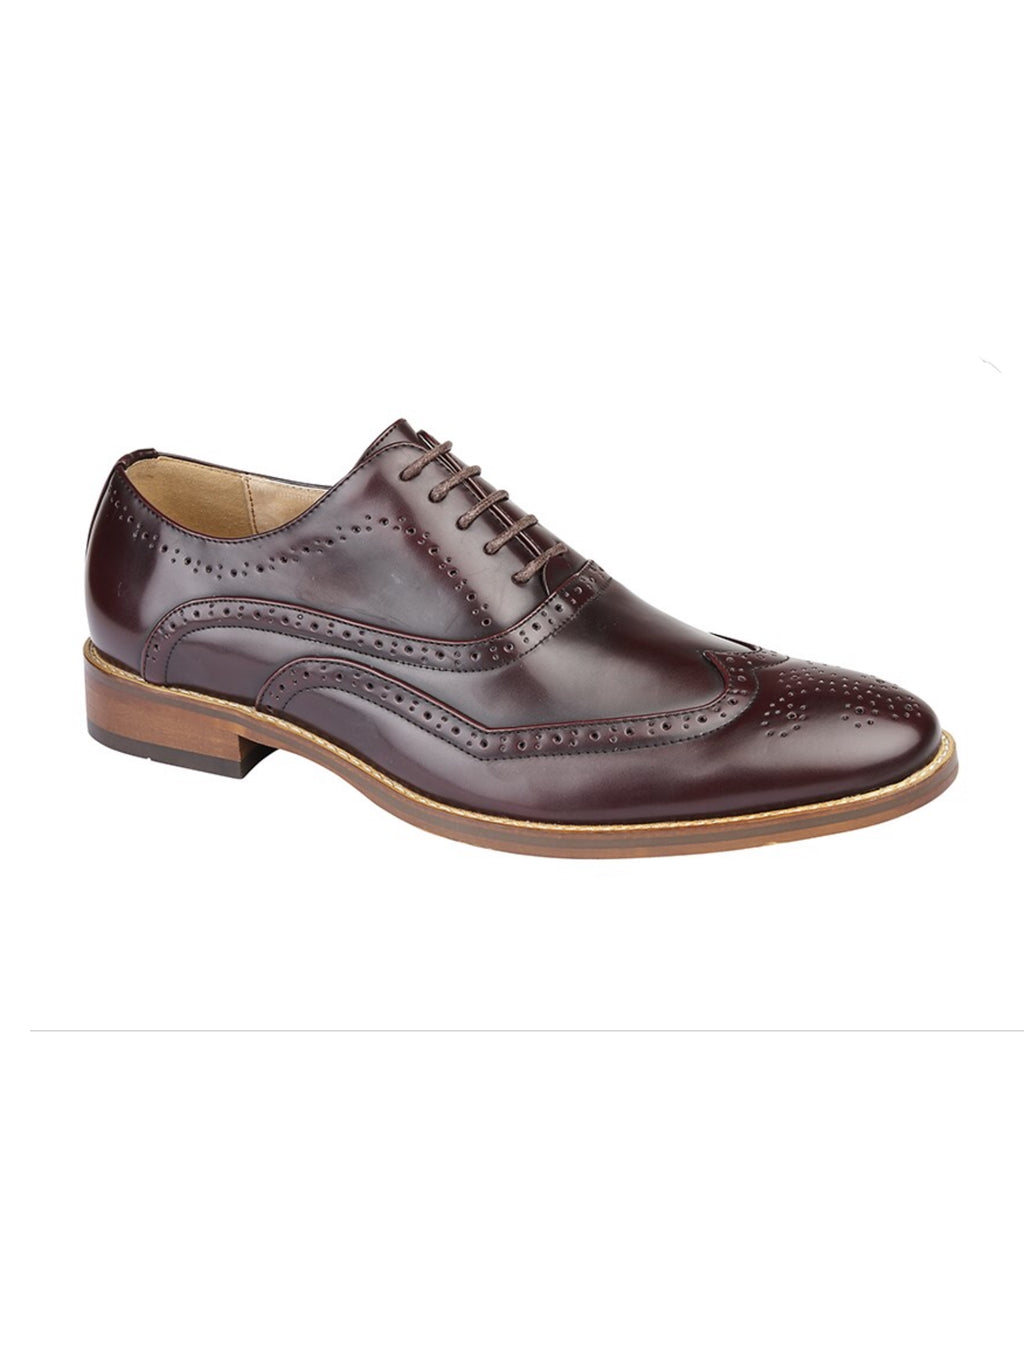 Oxblood Oxford Brogue Shoe